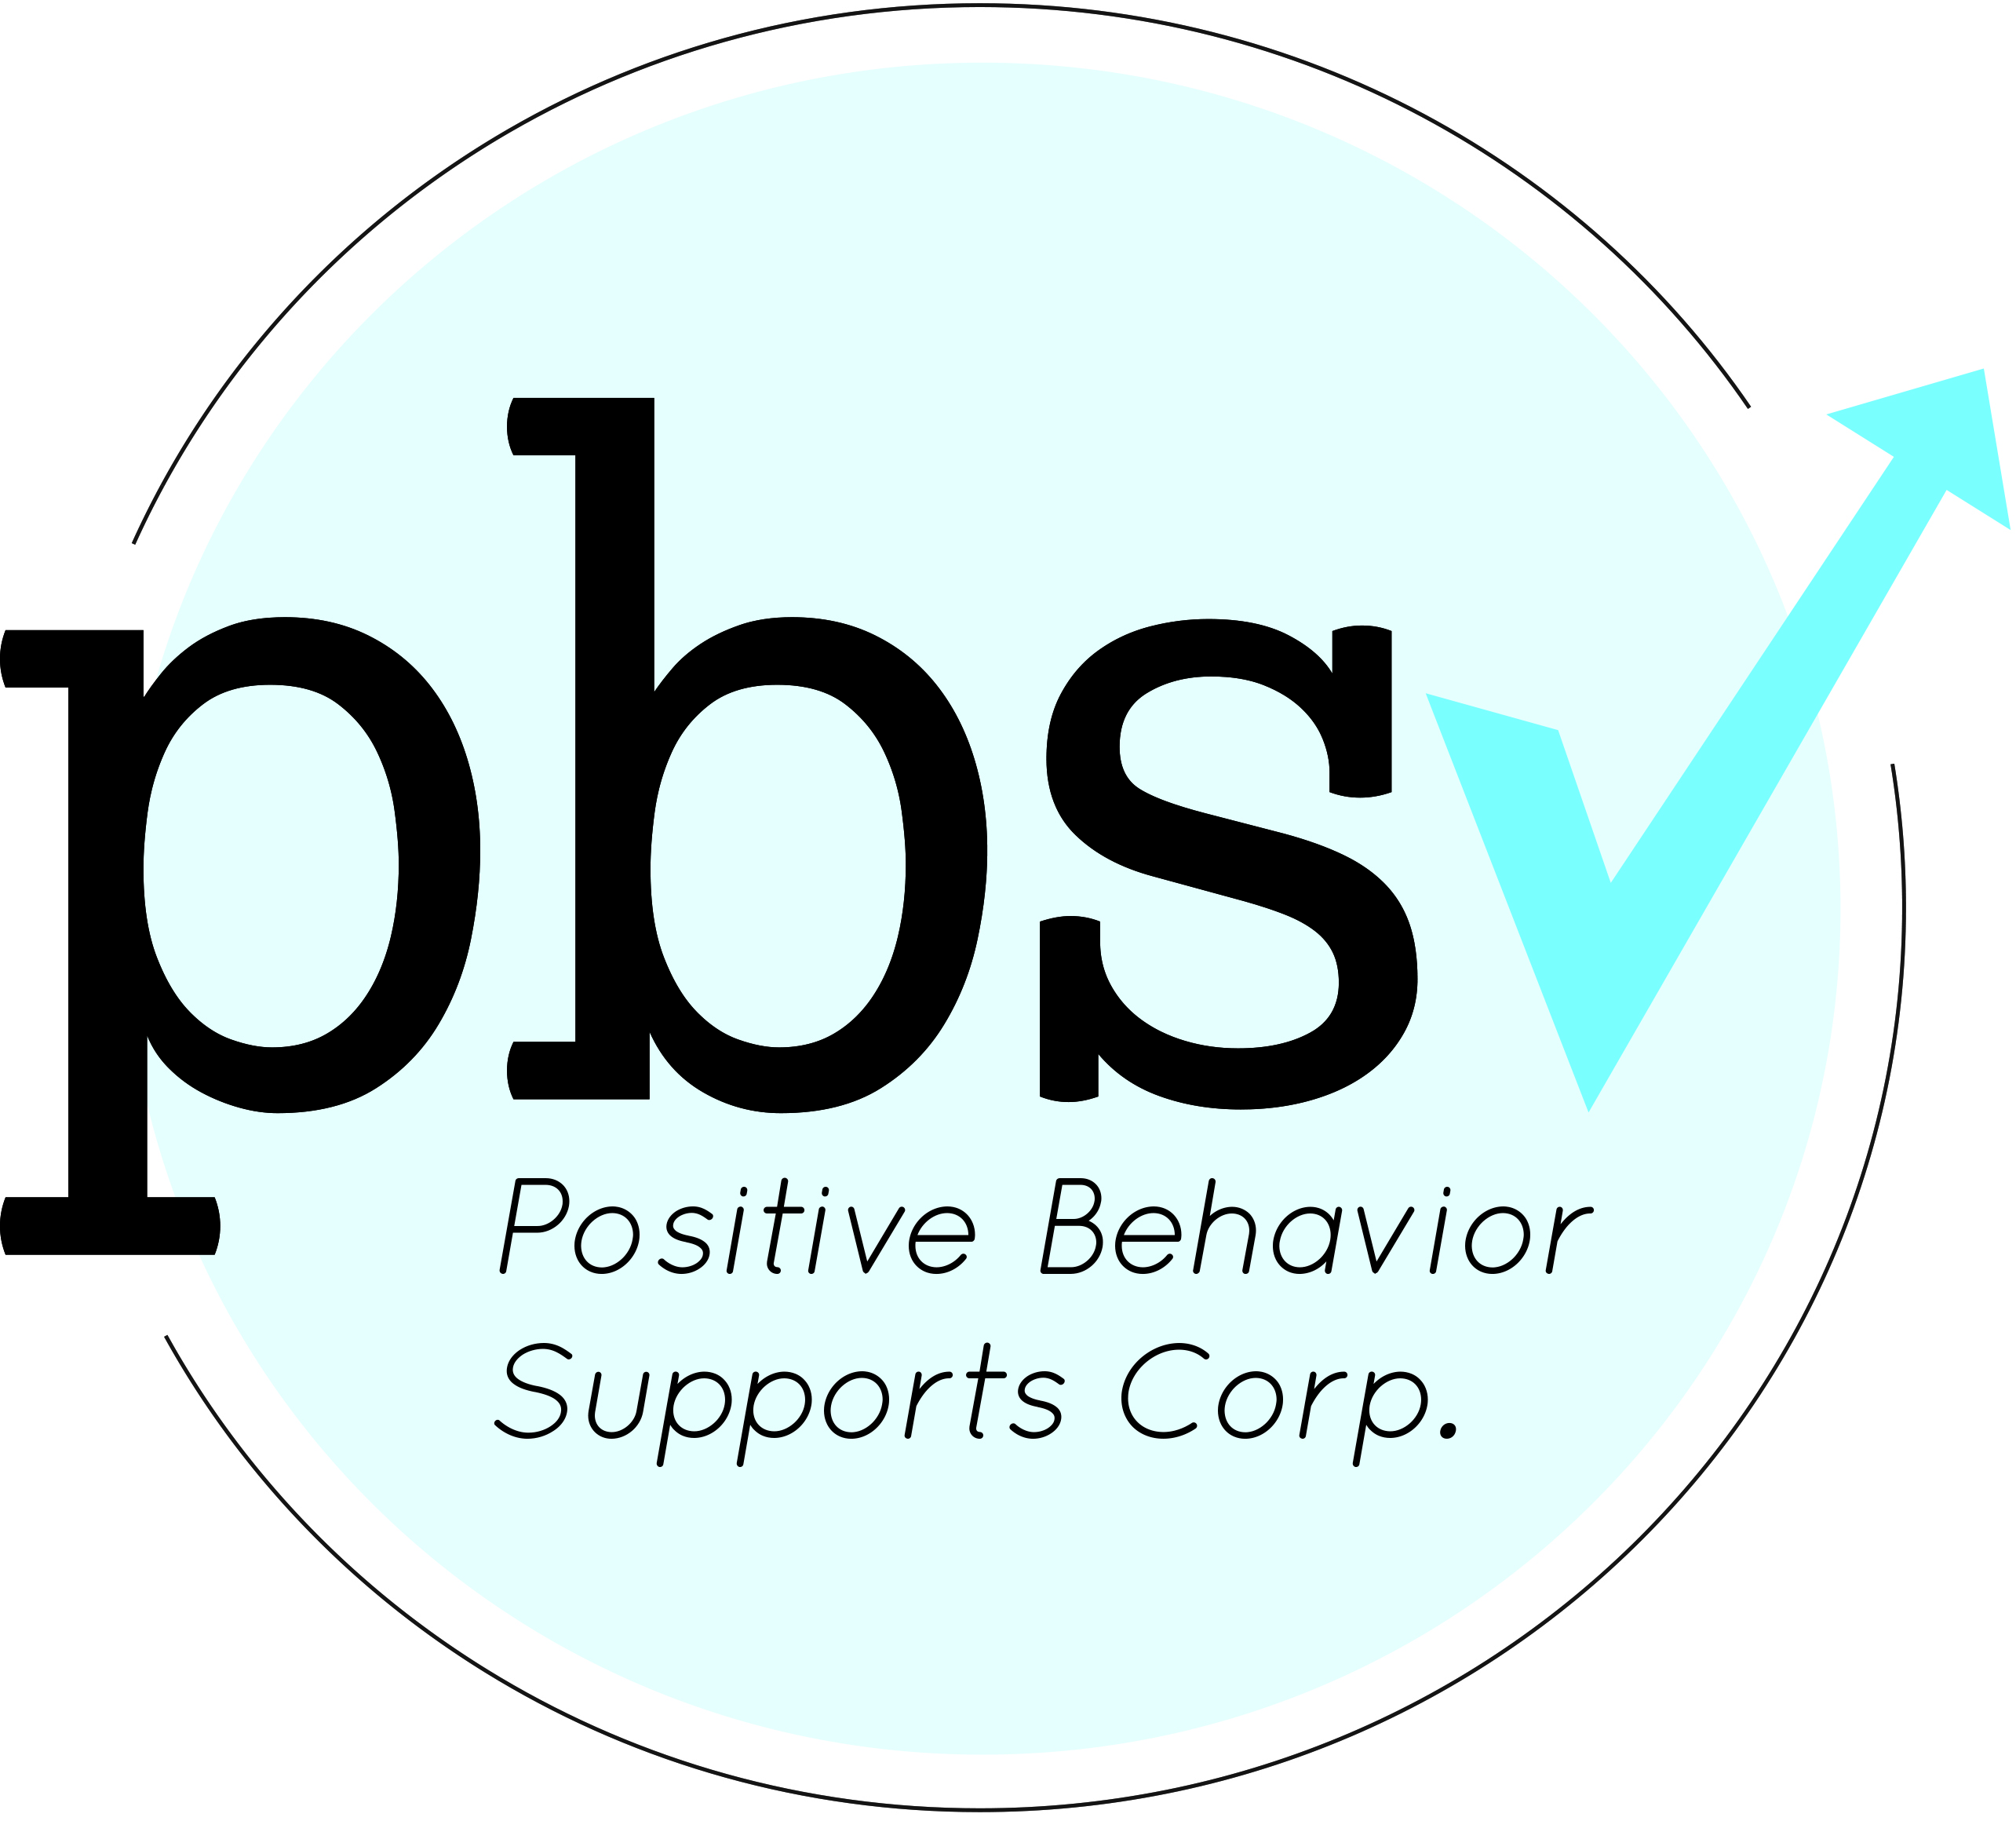 TeamPBS_NewLogo_vs1